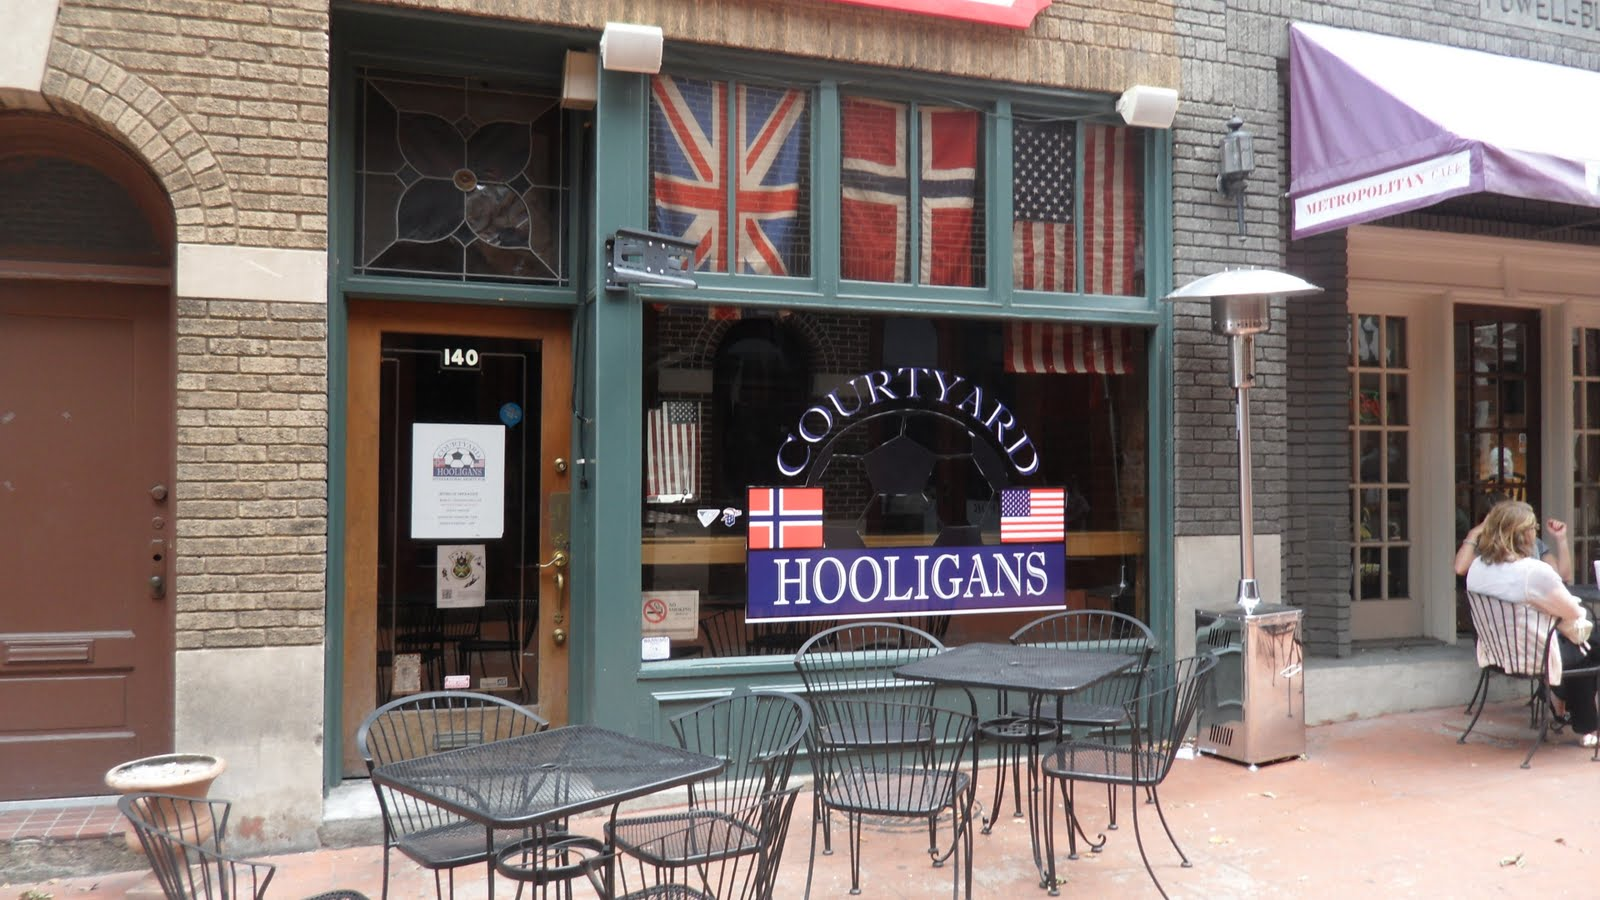 30 Bars In 30 Days Courtyard Hooligans Serves Up Cold